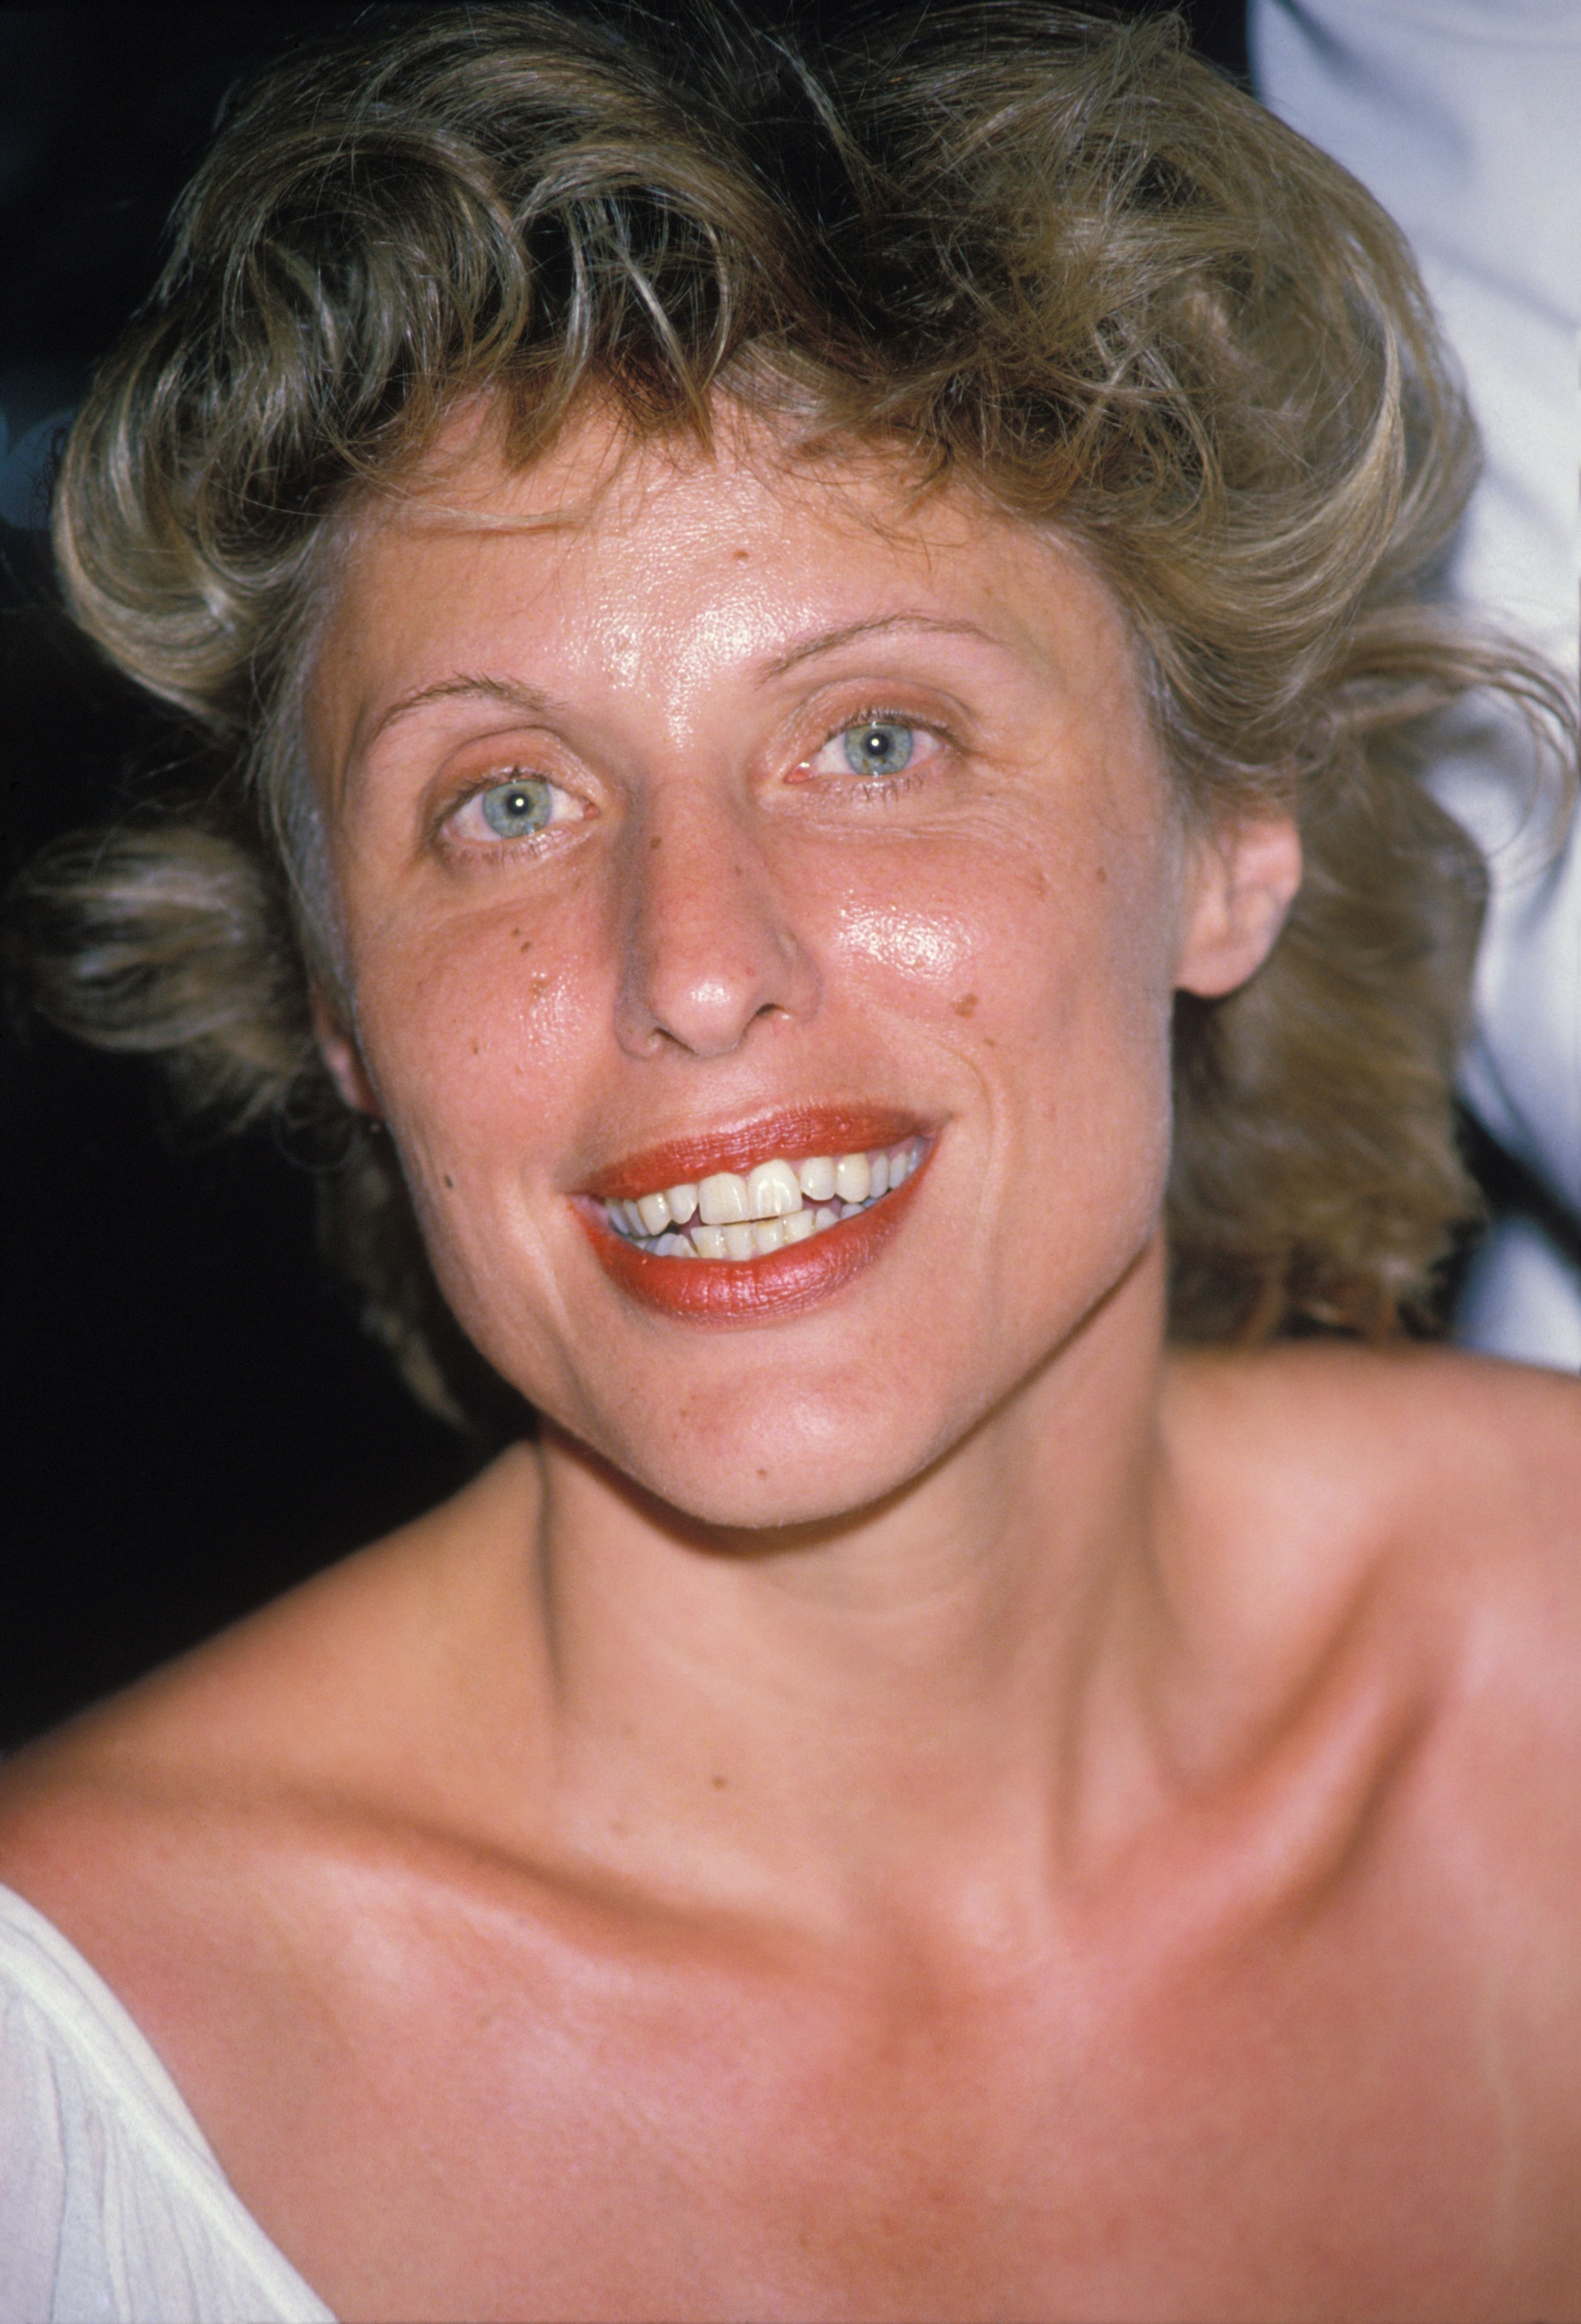 Catherine Lachens au Festival Brassens à Sète le 24 juin 1984, France. | Photo : Getty Images